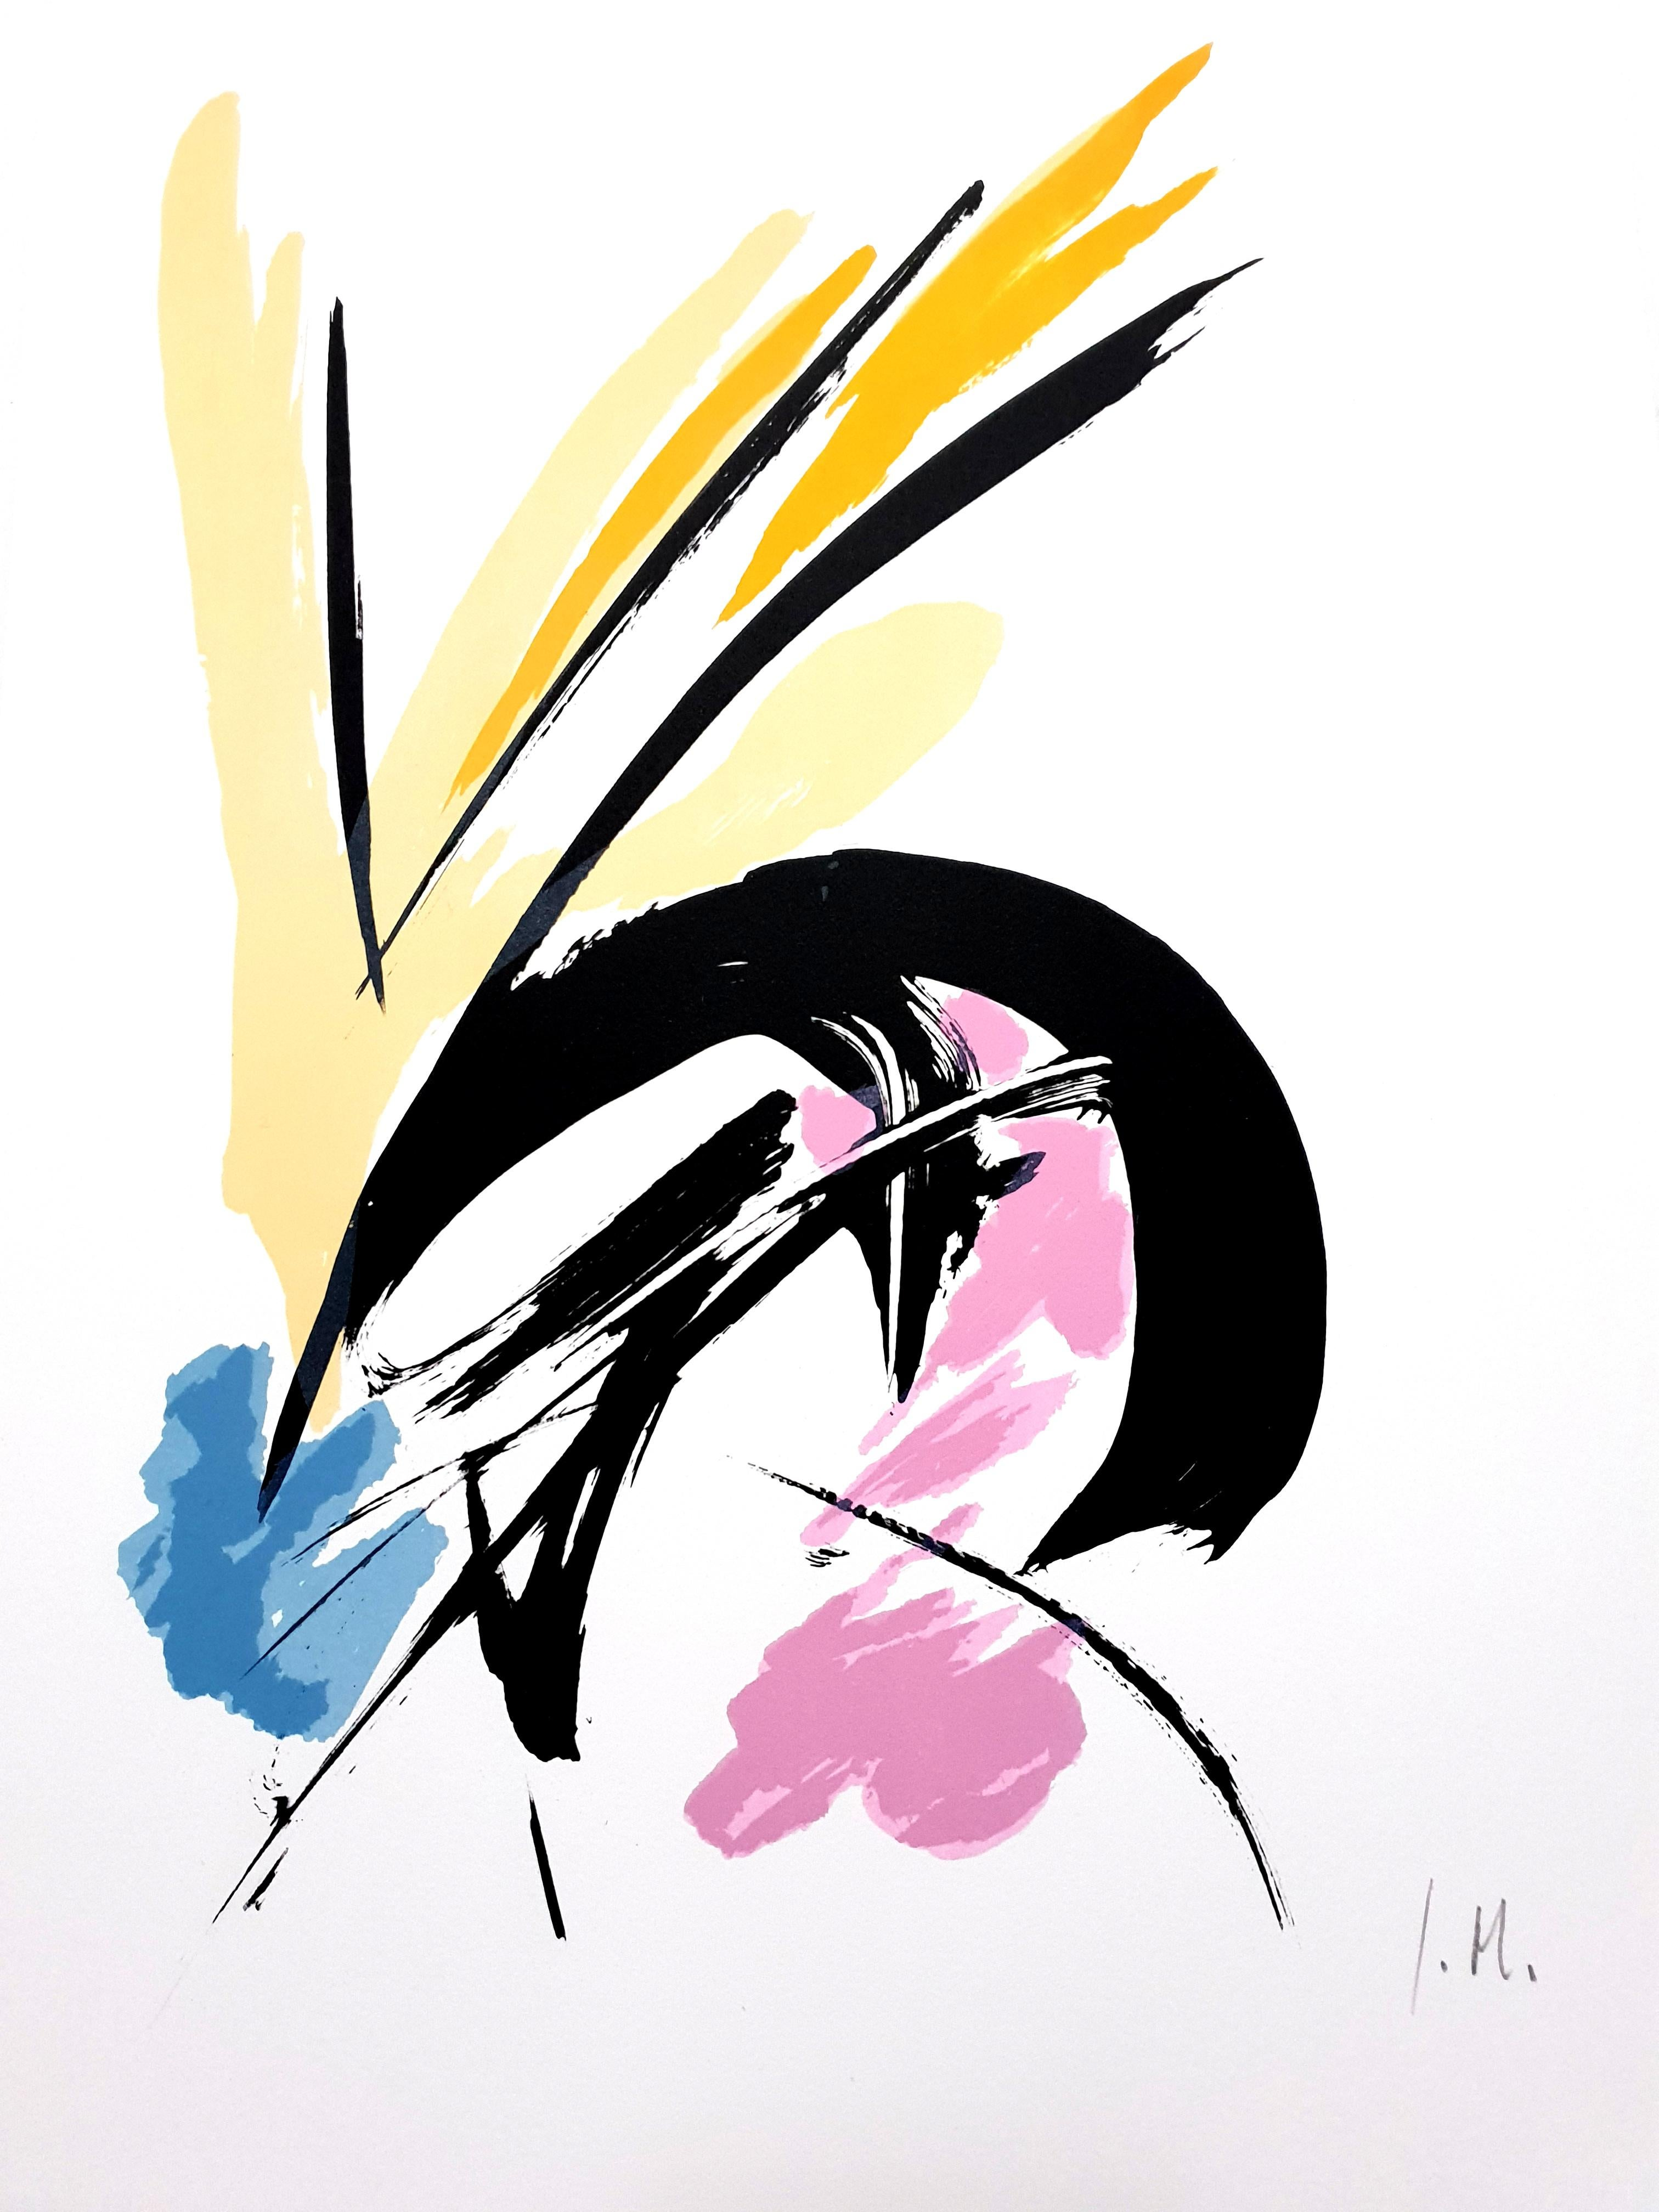 Jean Miotte - Constant Eye I - Original Signed Lithograph